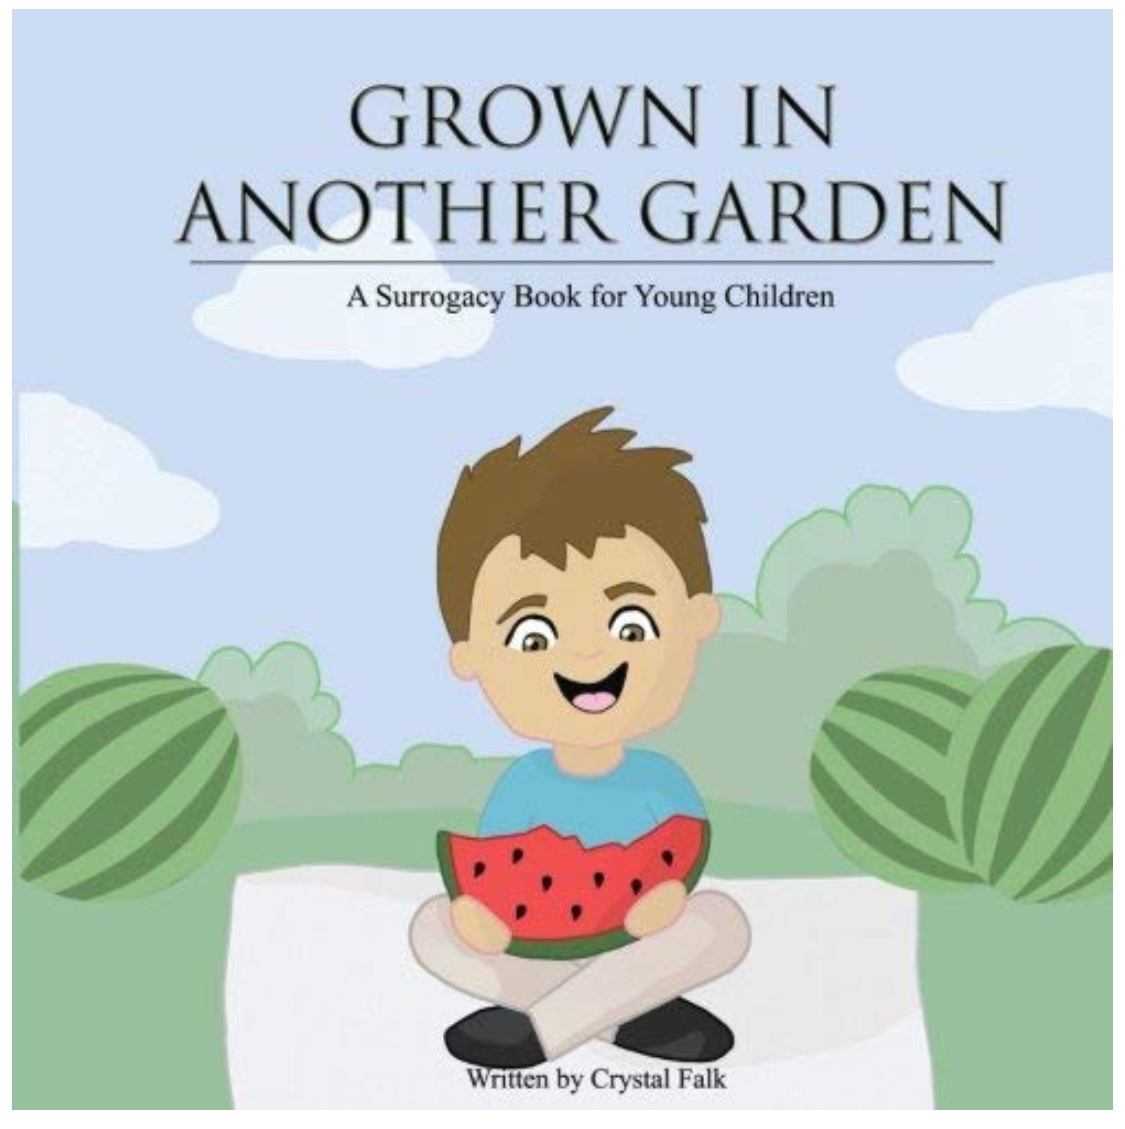 "Grown In Another Garden - Grown in Another Garden introduces young children, ages 2 years old to 8 years old, to surrogacy. Follow the story of Mikey and his family as he learns about the unique way he was born into a loving family – through the kindness of a surrogate. Join with him discovers that ""sometimes the sweetest and most beautiful creations are grown in another garden."" Mikey's story helps to explain why some families choose surrogates to help grow their families and why surrogates choose to help other families that way."